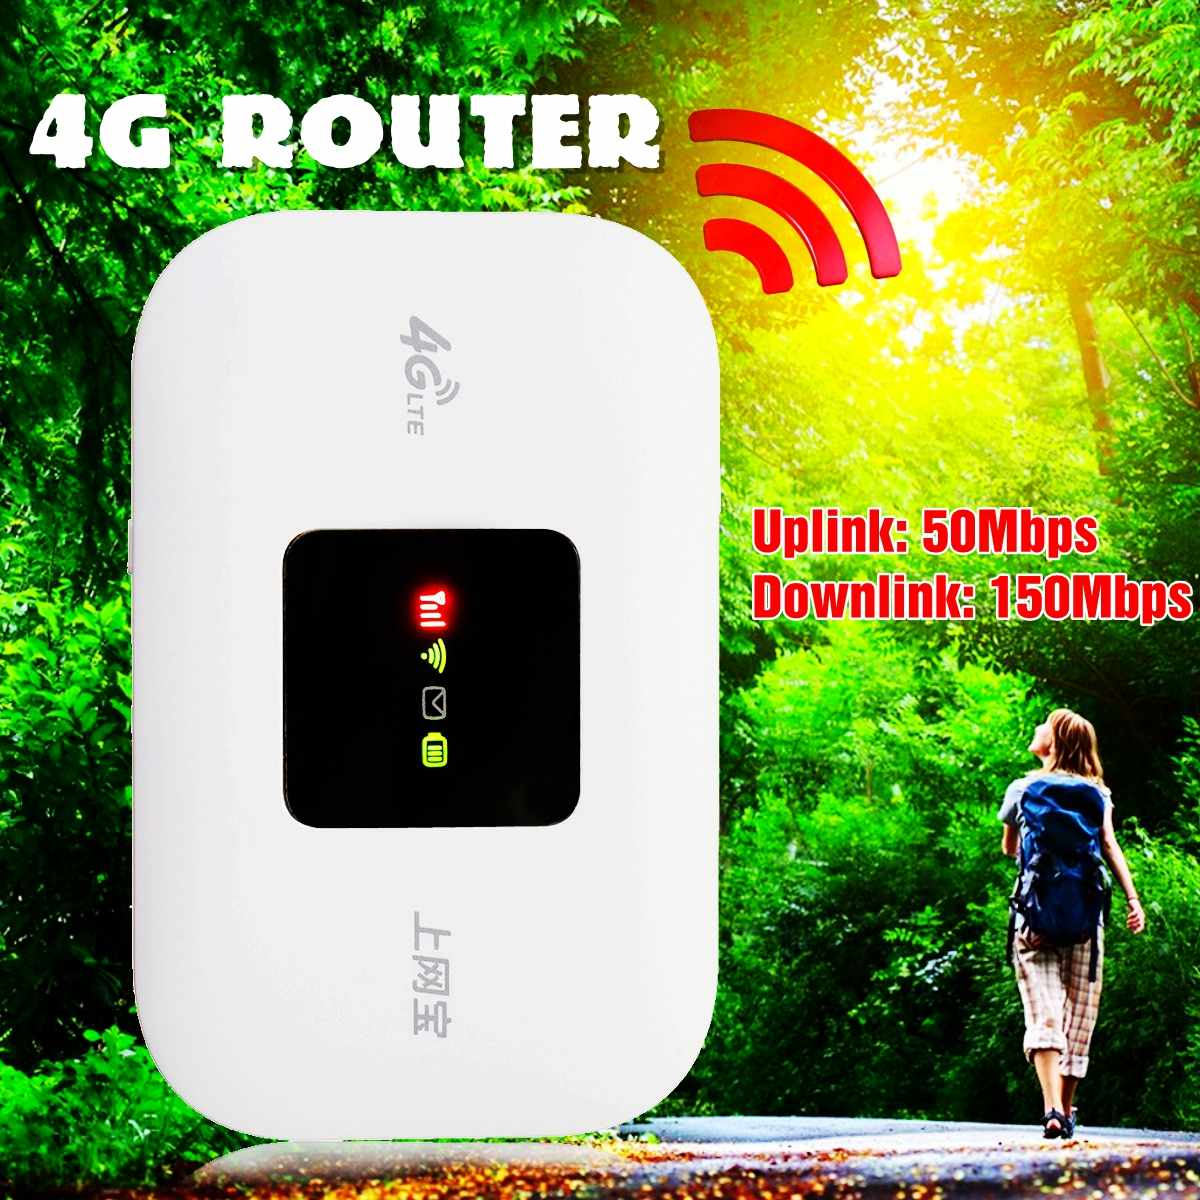 150Mbps 4G Router Portable WiFi Car WiFi Mobile Hotspot Energy Saving 3 Model 4 Model 5 Model 6 Model150Mbps 4G Router Portable WiFi Car WiFi Mobile Hotspot Energy Saving 3 Model 4 Model 5 Model 6 Model